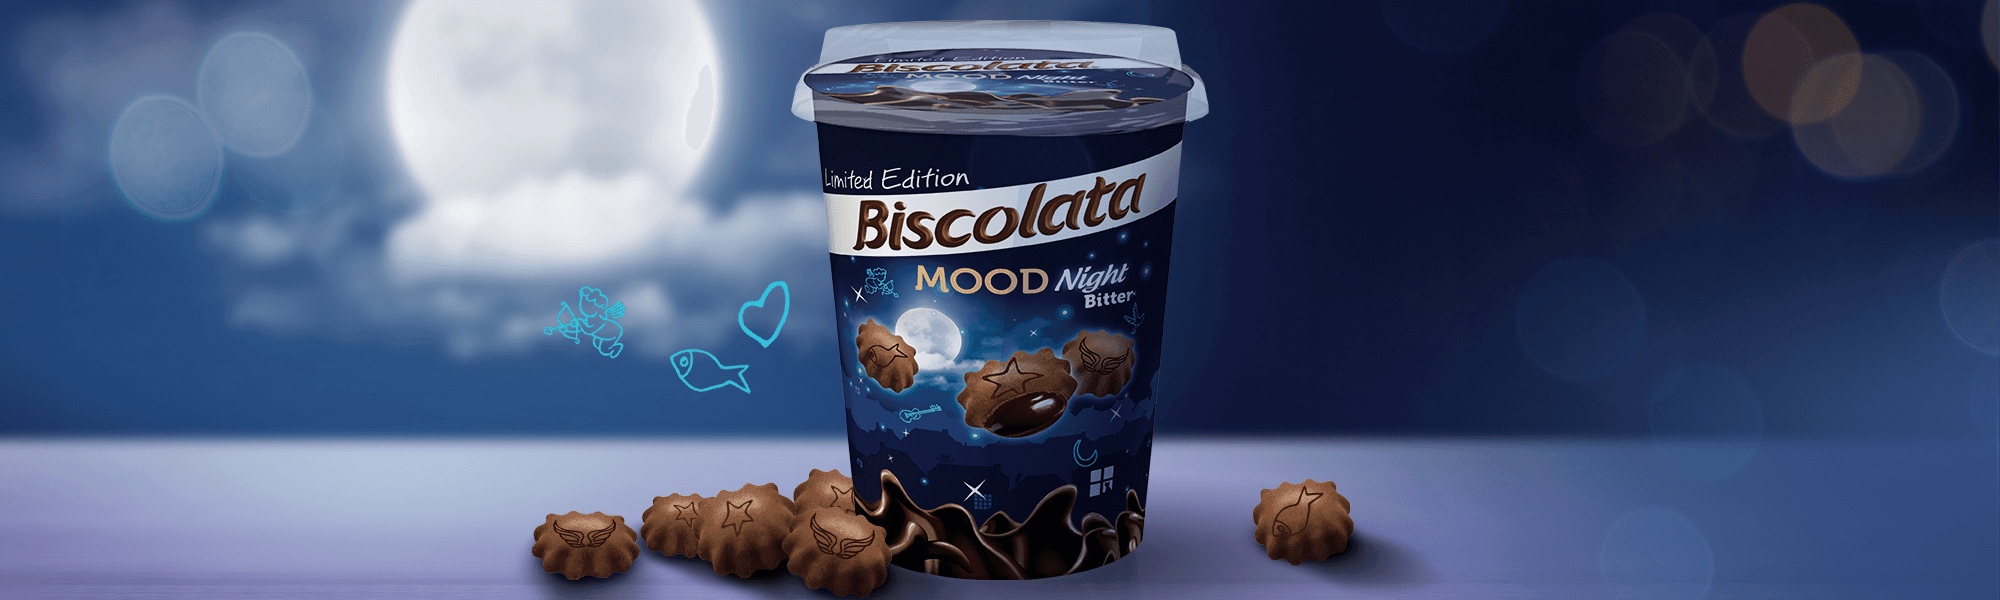 Biscolata Mood Night